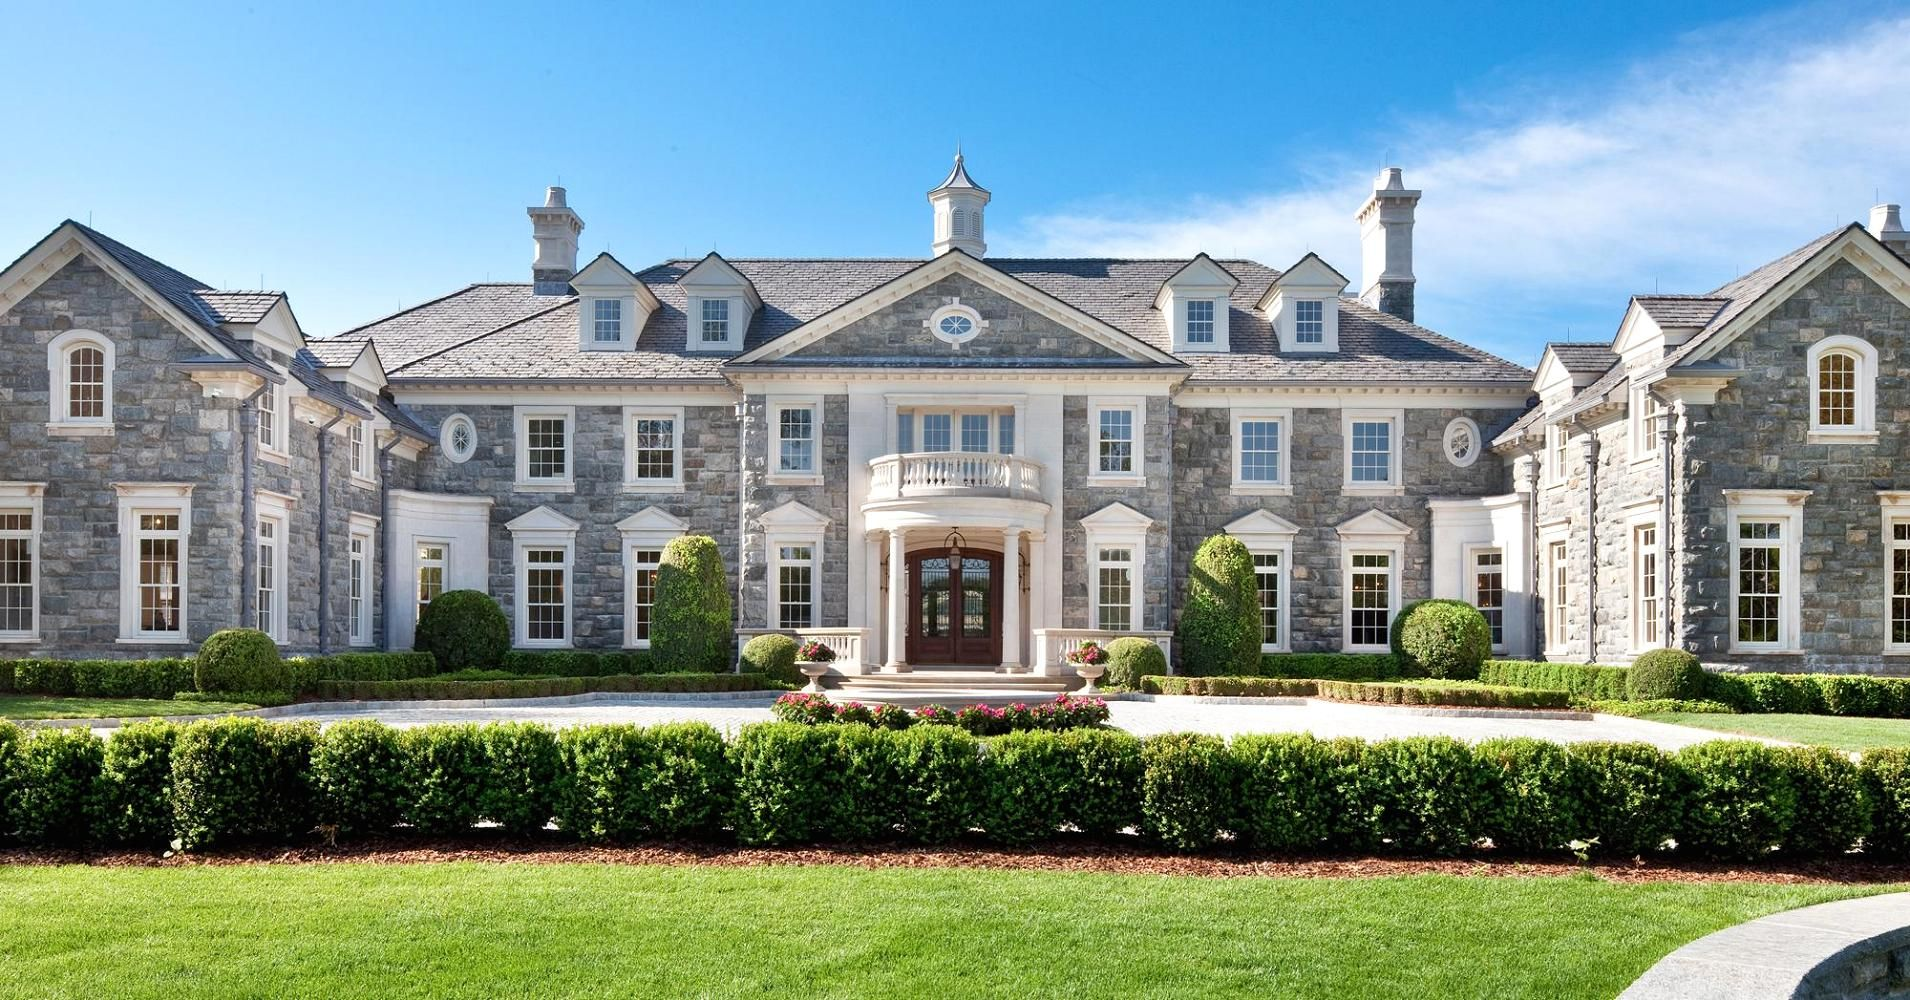 Most Expensive Fancy Houses In The World Maisons Minuscules